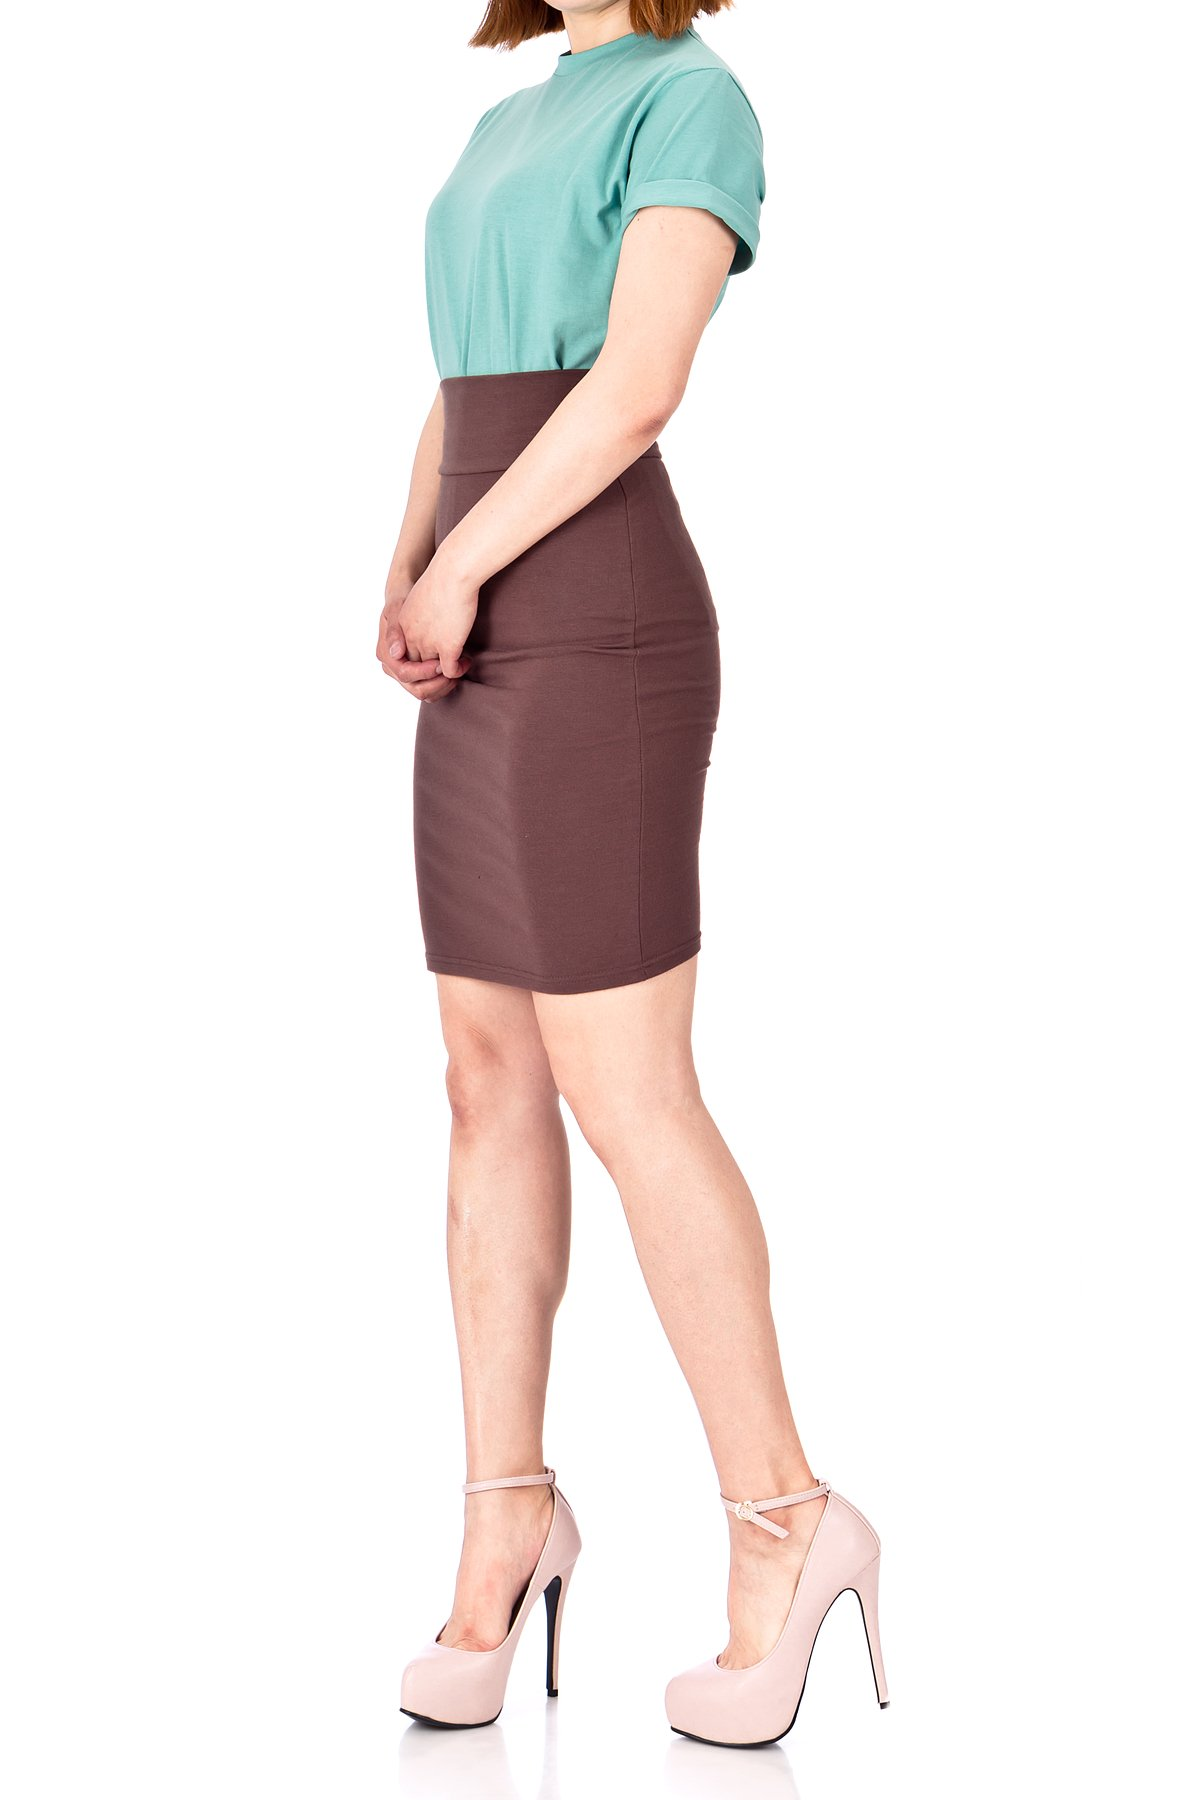 Every Occasion Stretch Pull on Wide High Waist Bodycon Pencil Knee Length Midi Skirt Brown 04